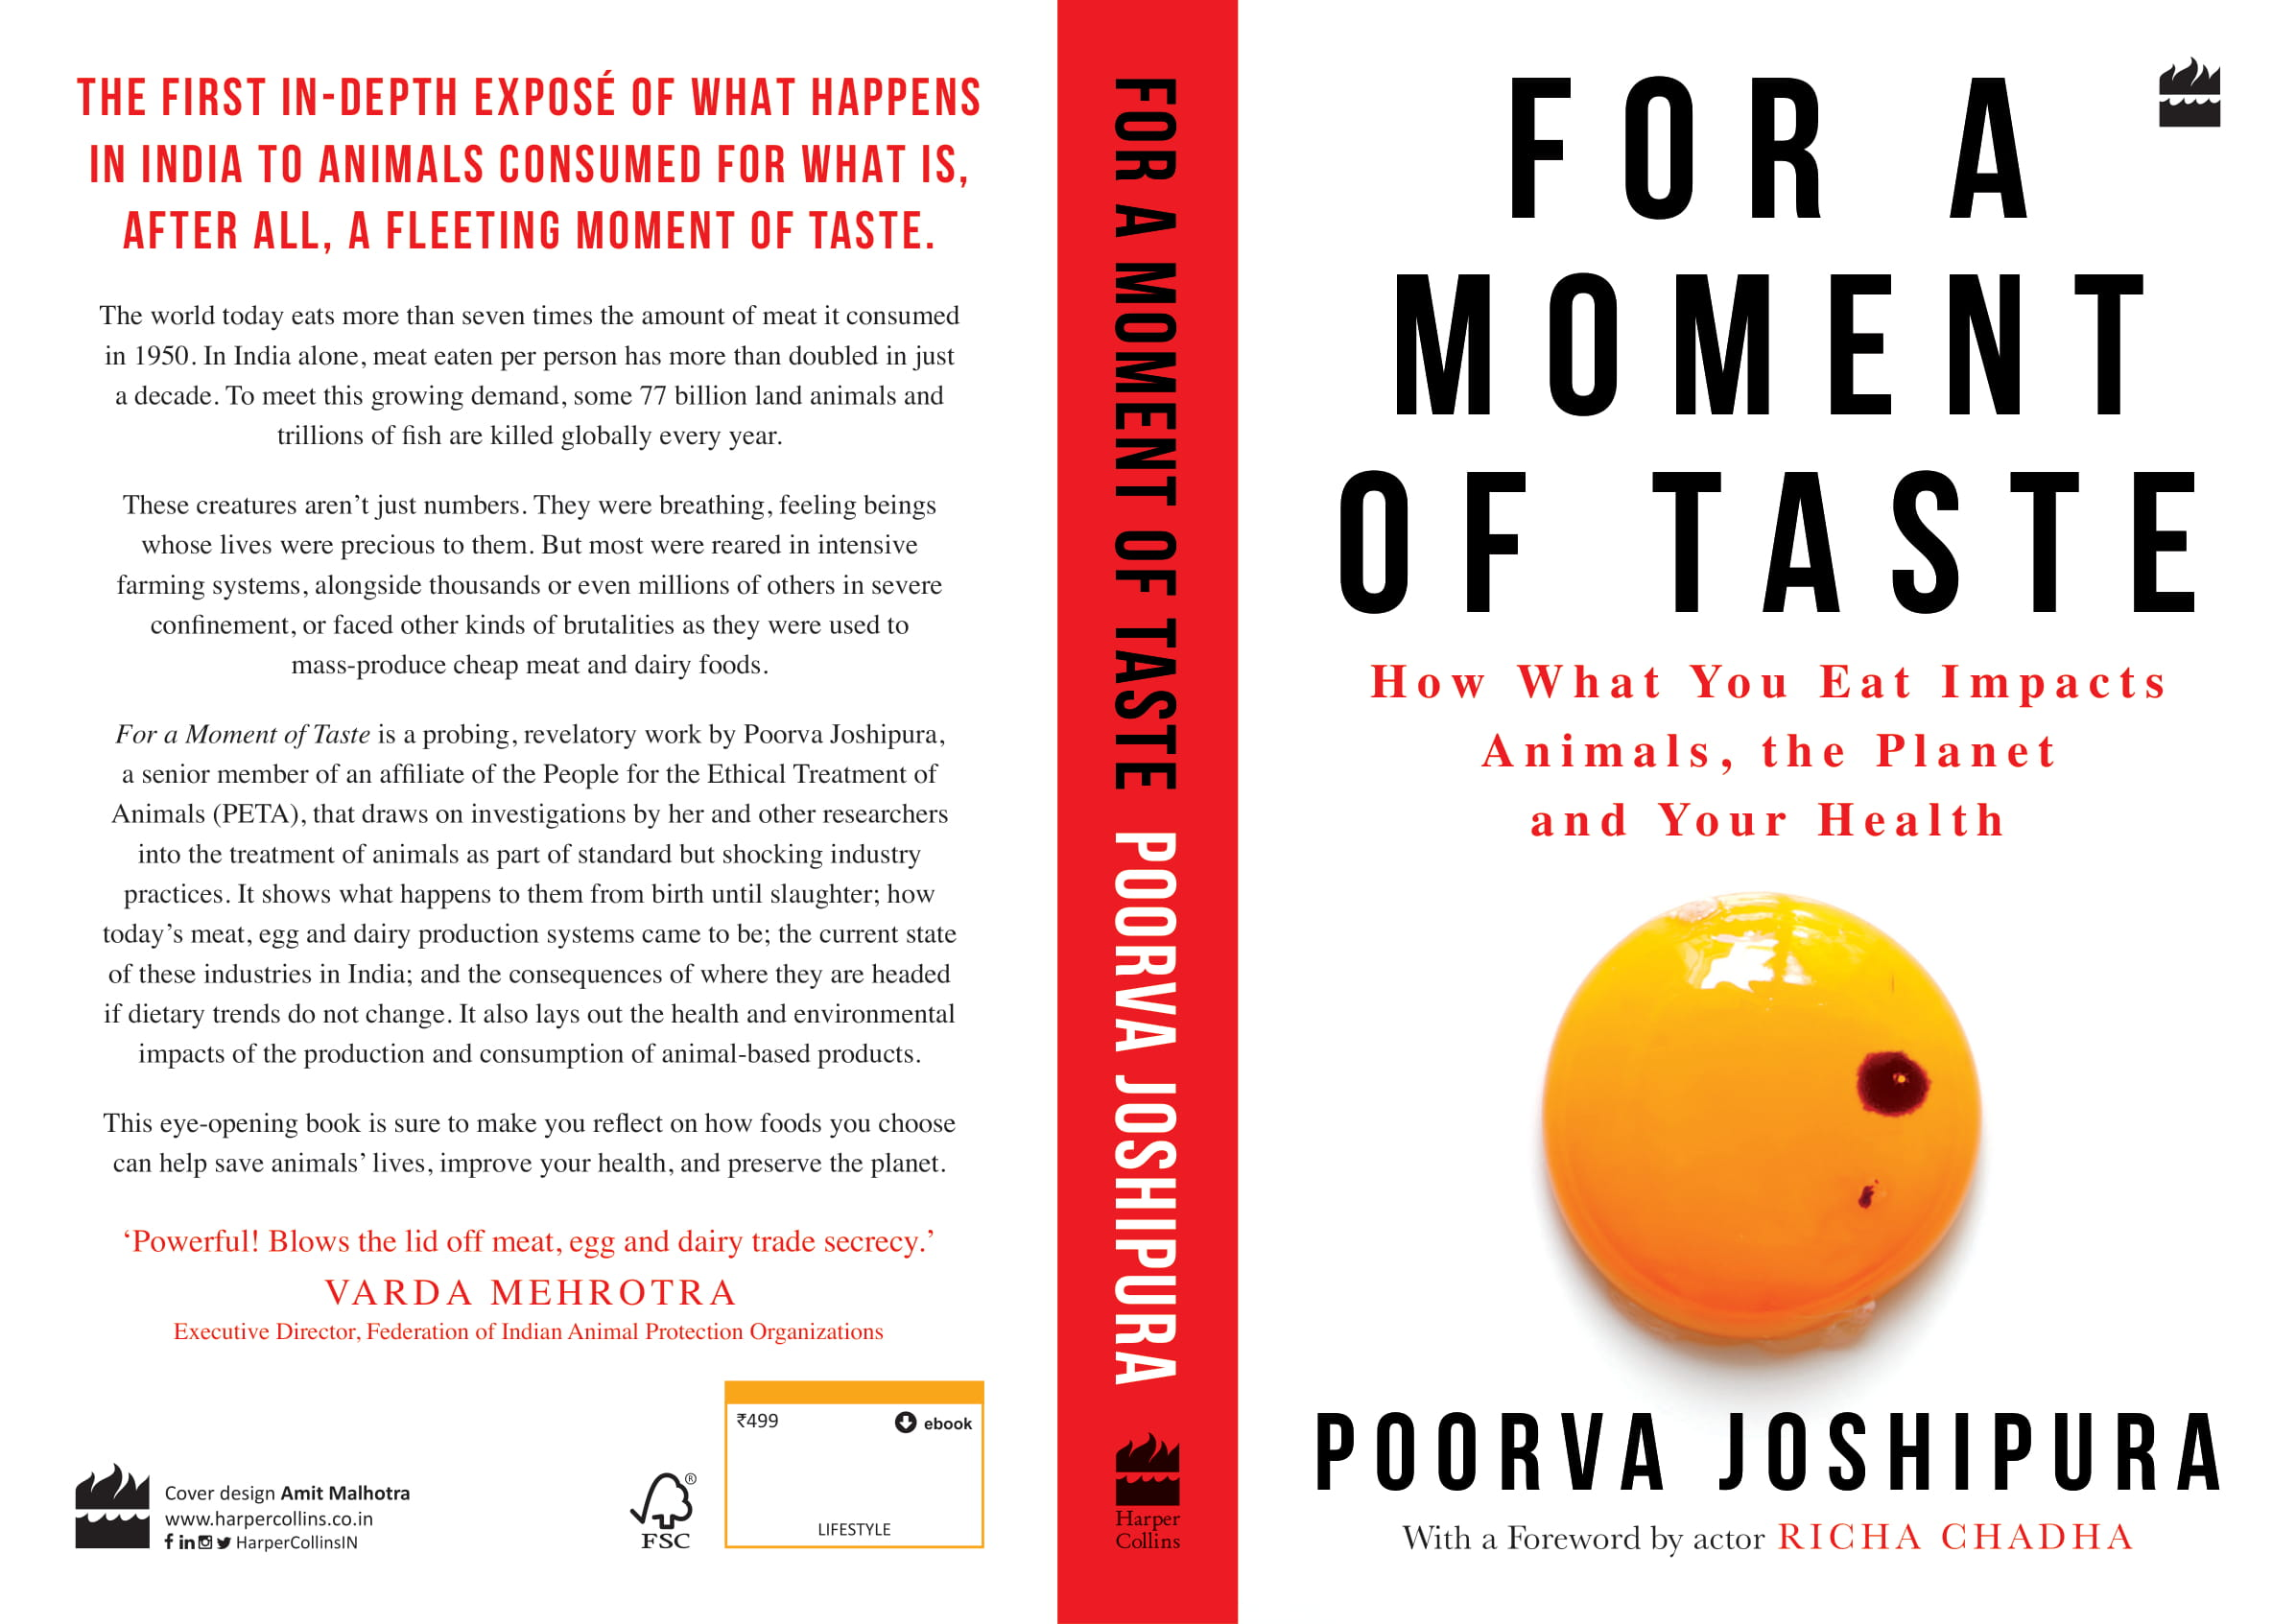 For a Moment of Taste cover - Poorva's book